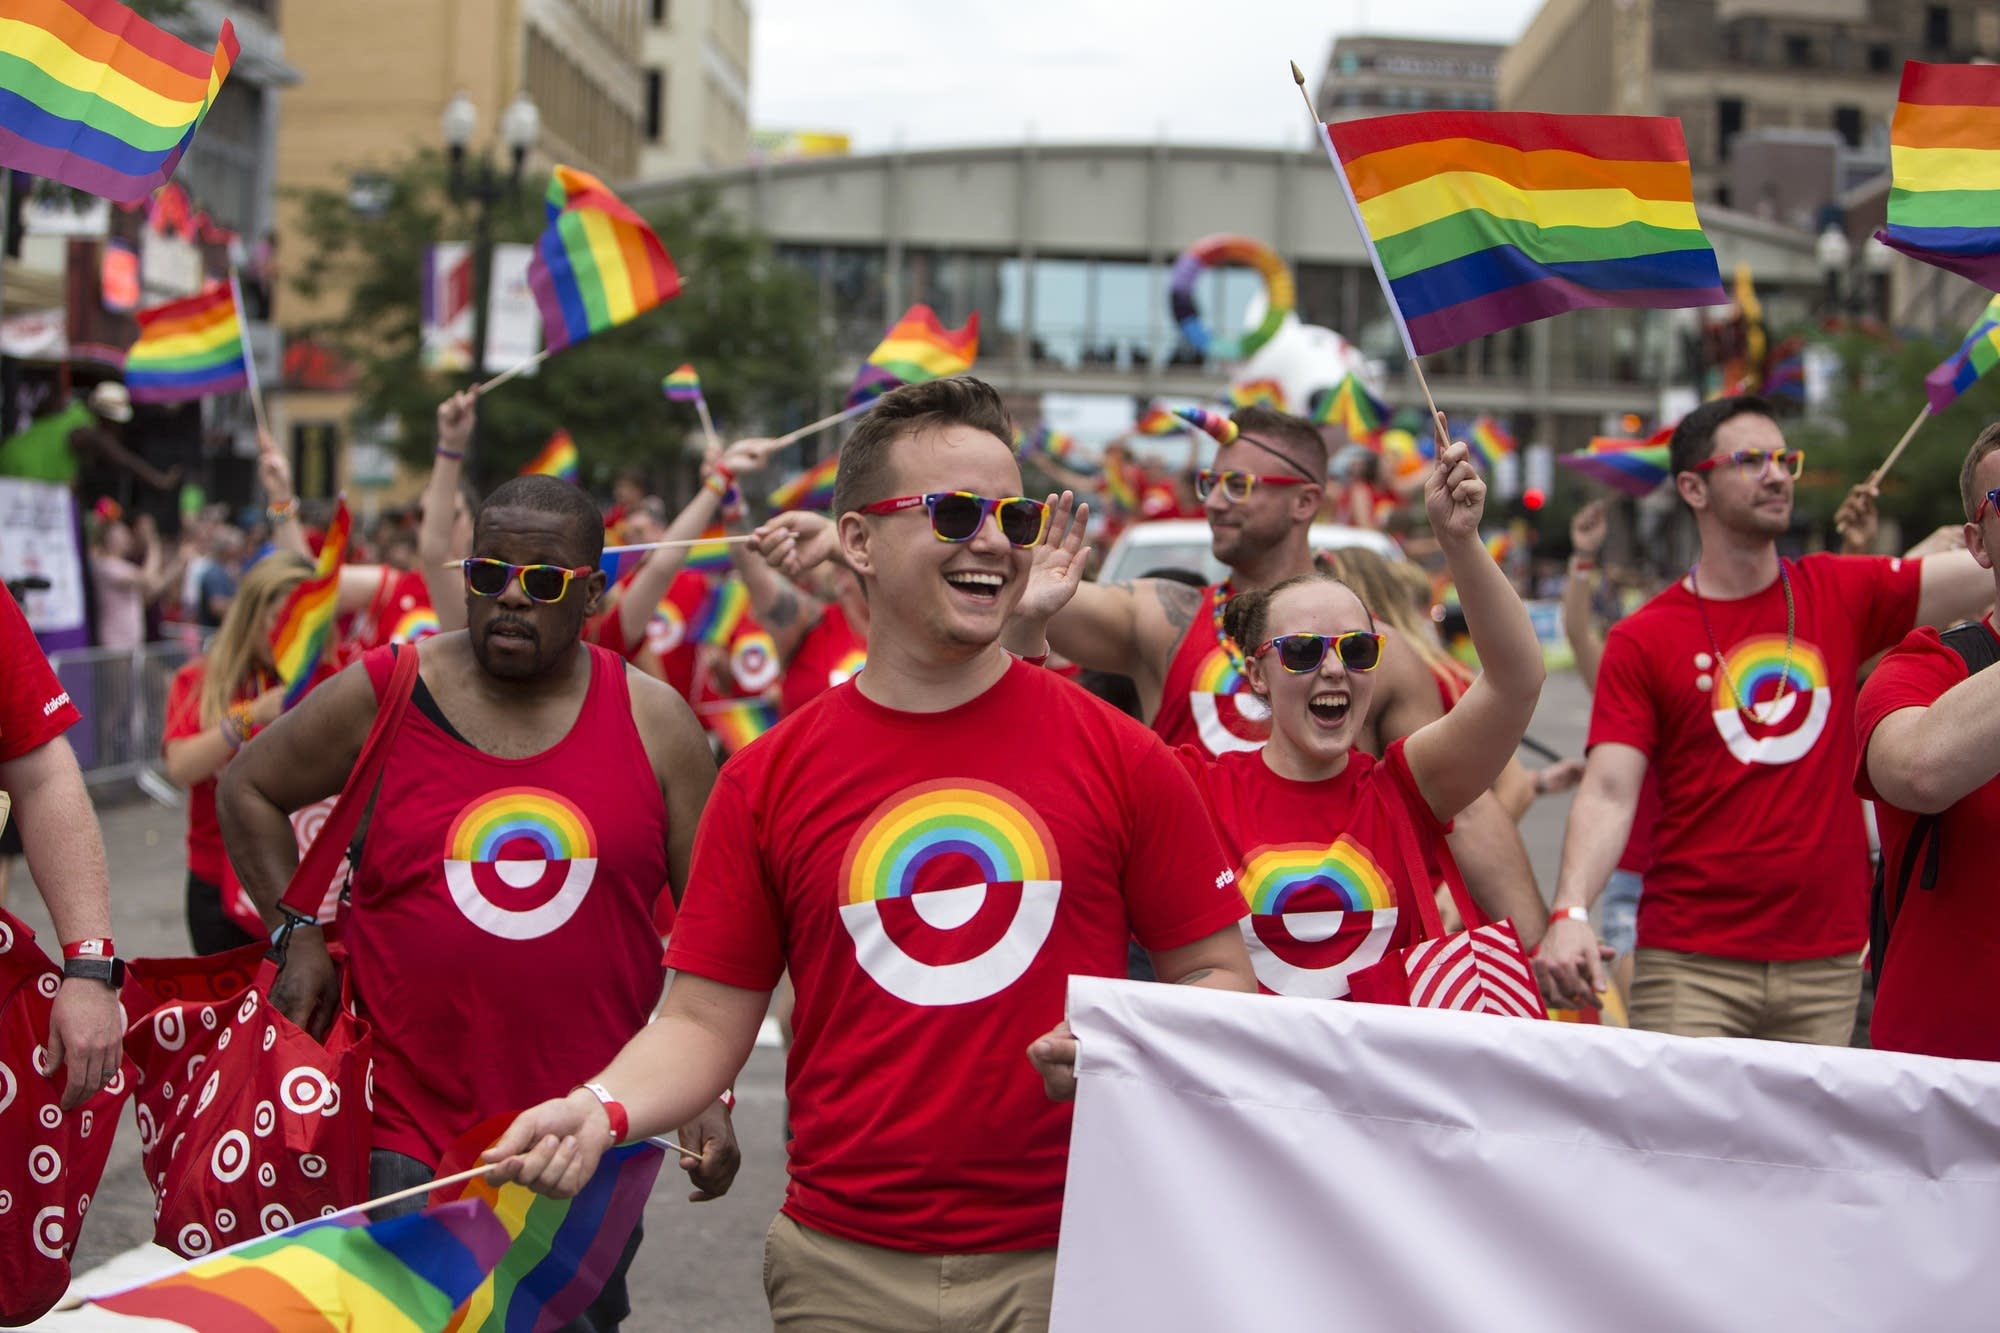 Target employees march together.